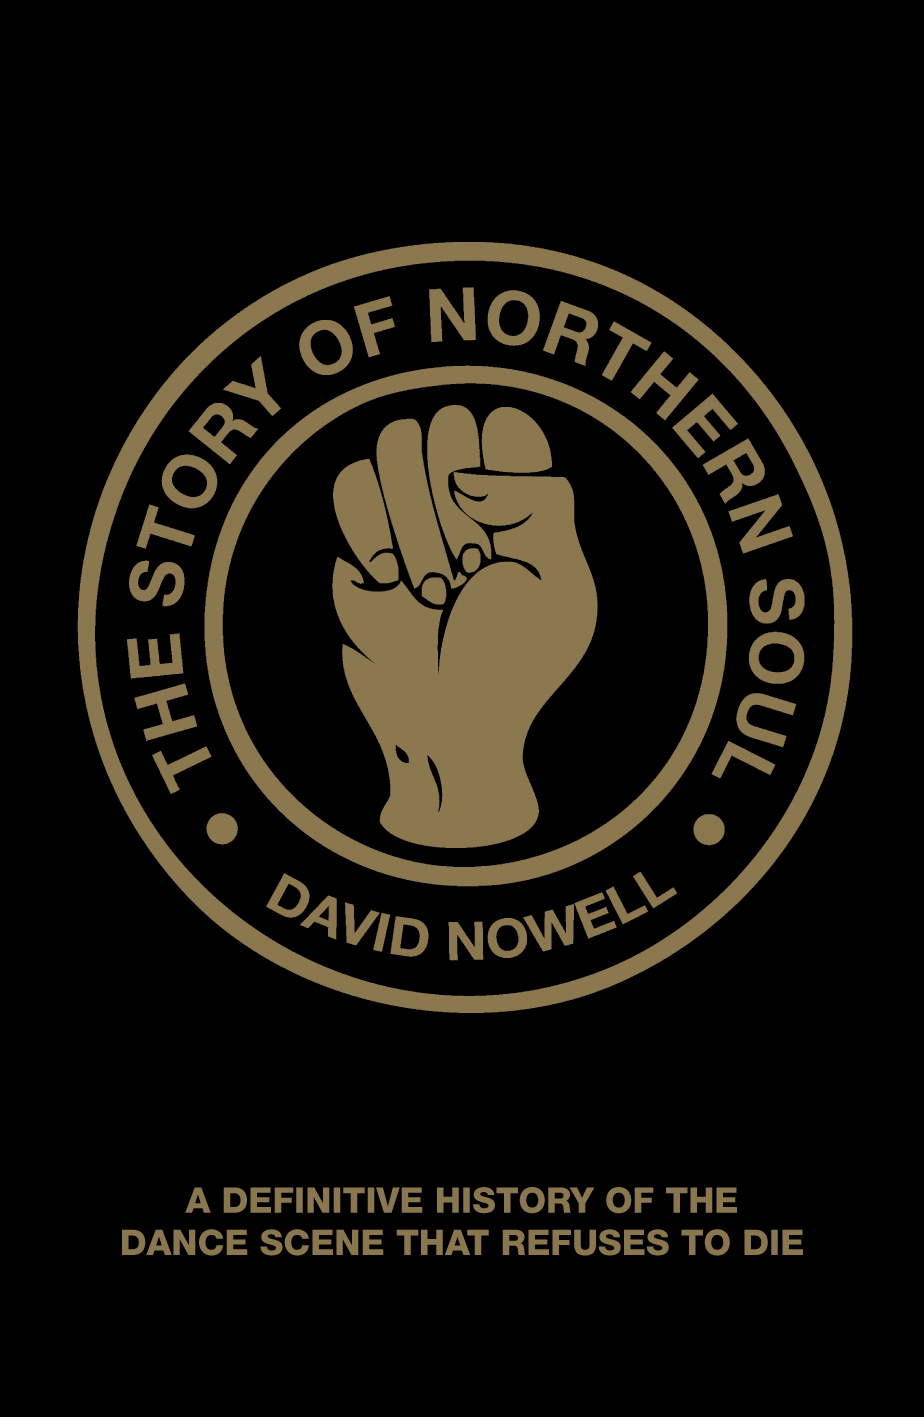 The Story of Northern Soul